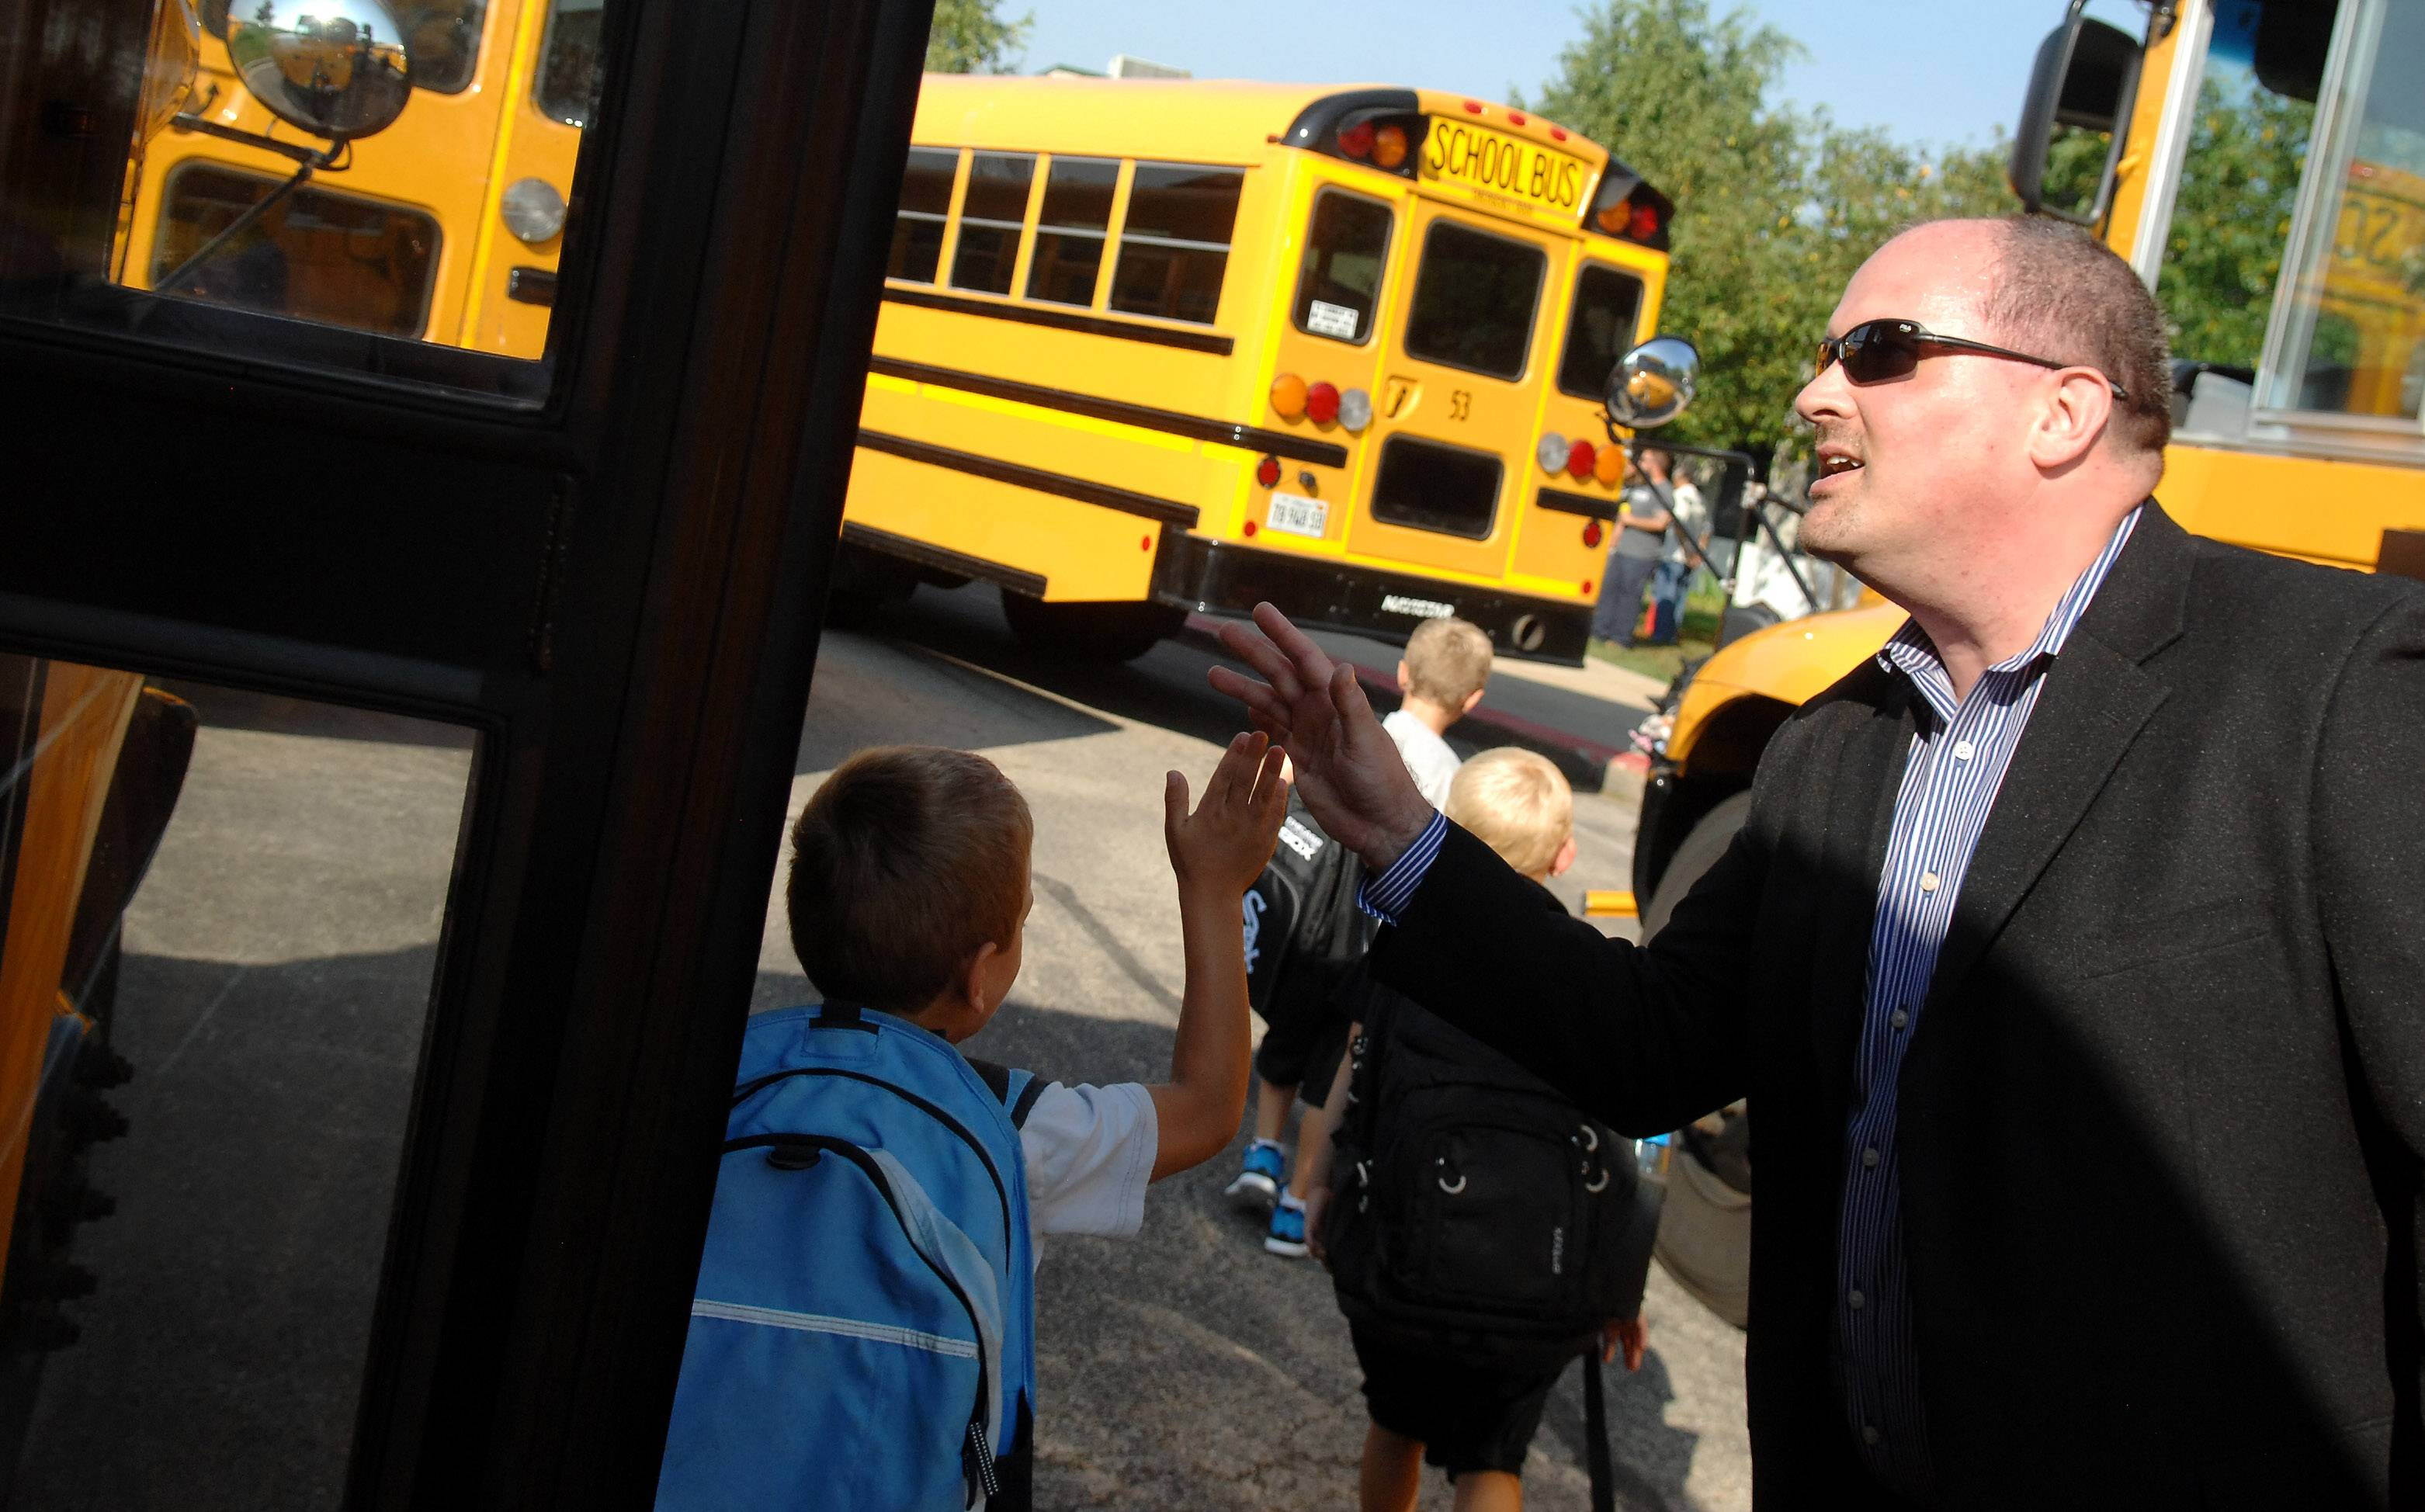 Principal Daniel Schuth high-fives kids as they get off the bus on the first day of classes Wednesday for Burlington Central District 301 students at Prairie View Grade School in Elgin.